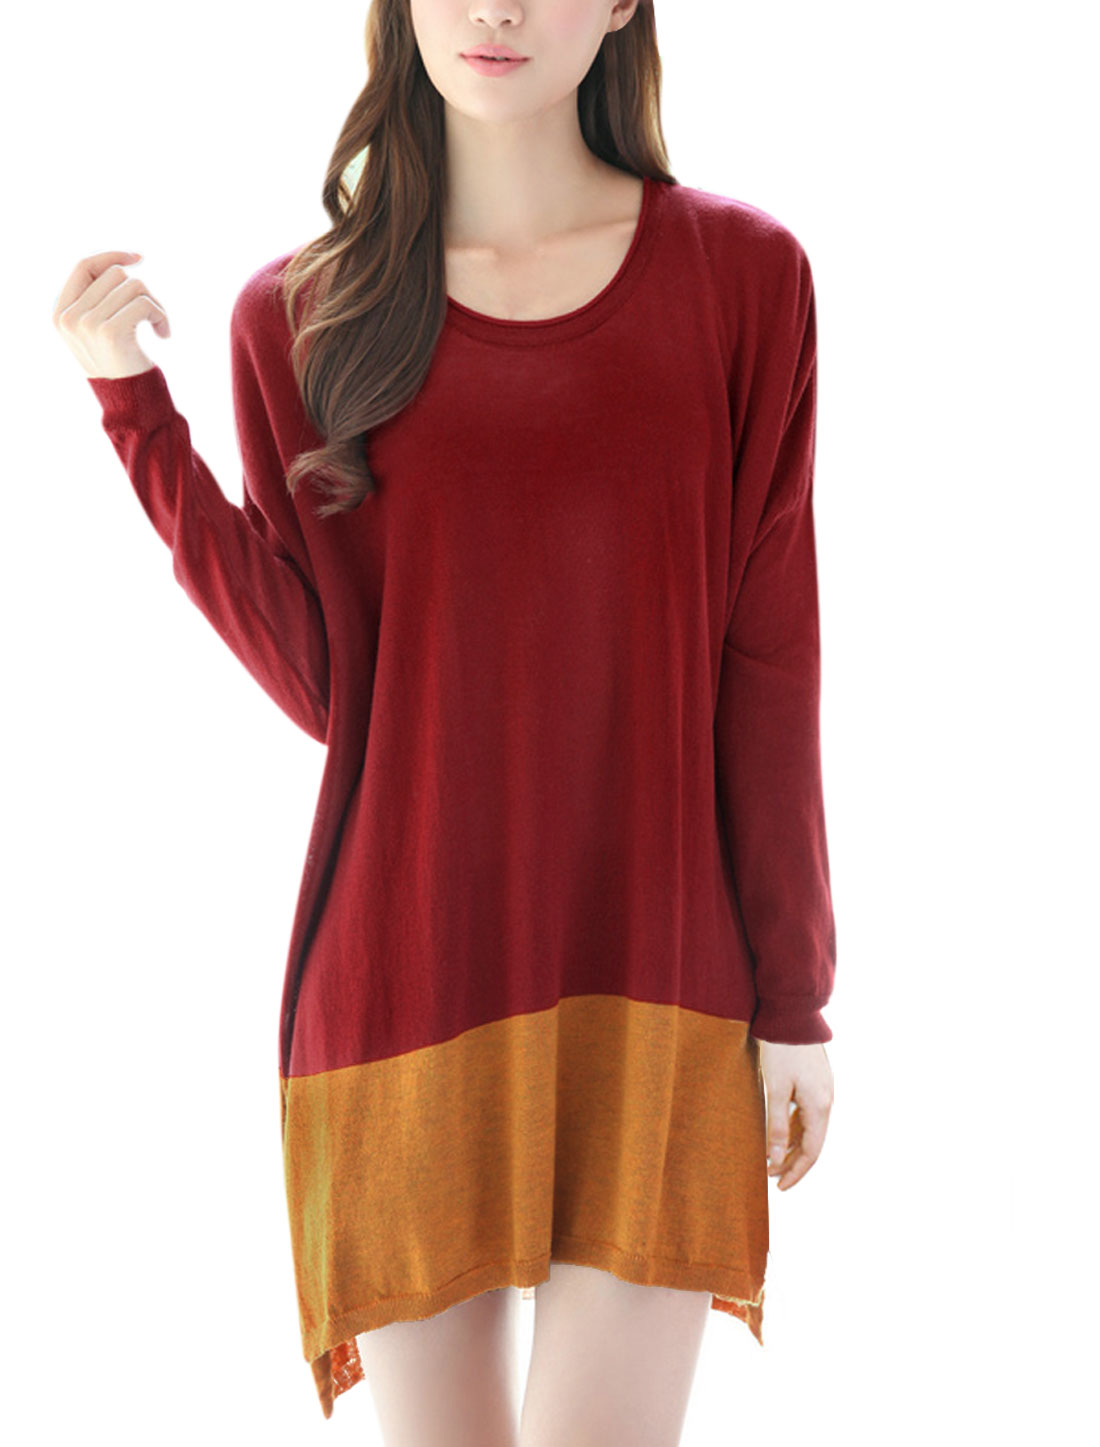 Women Split Sides Batwing Sleeves Color Block Tunic Knit Shirt Red M